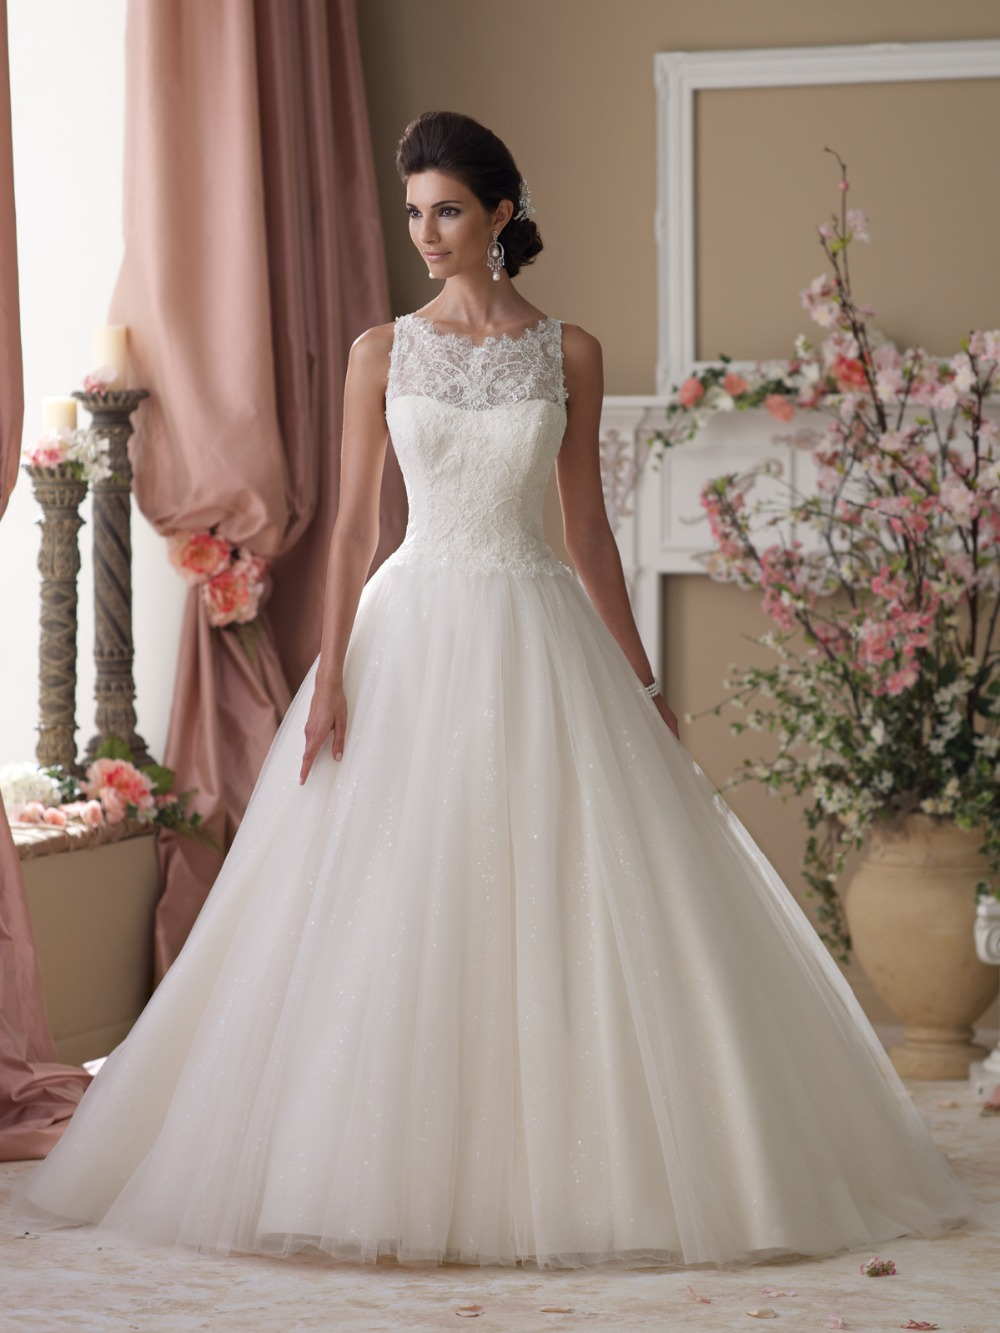 Ball Gown Wedding Dress With Lace Top - Best Wedding 2017